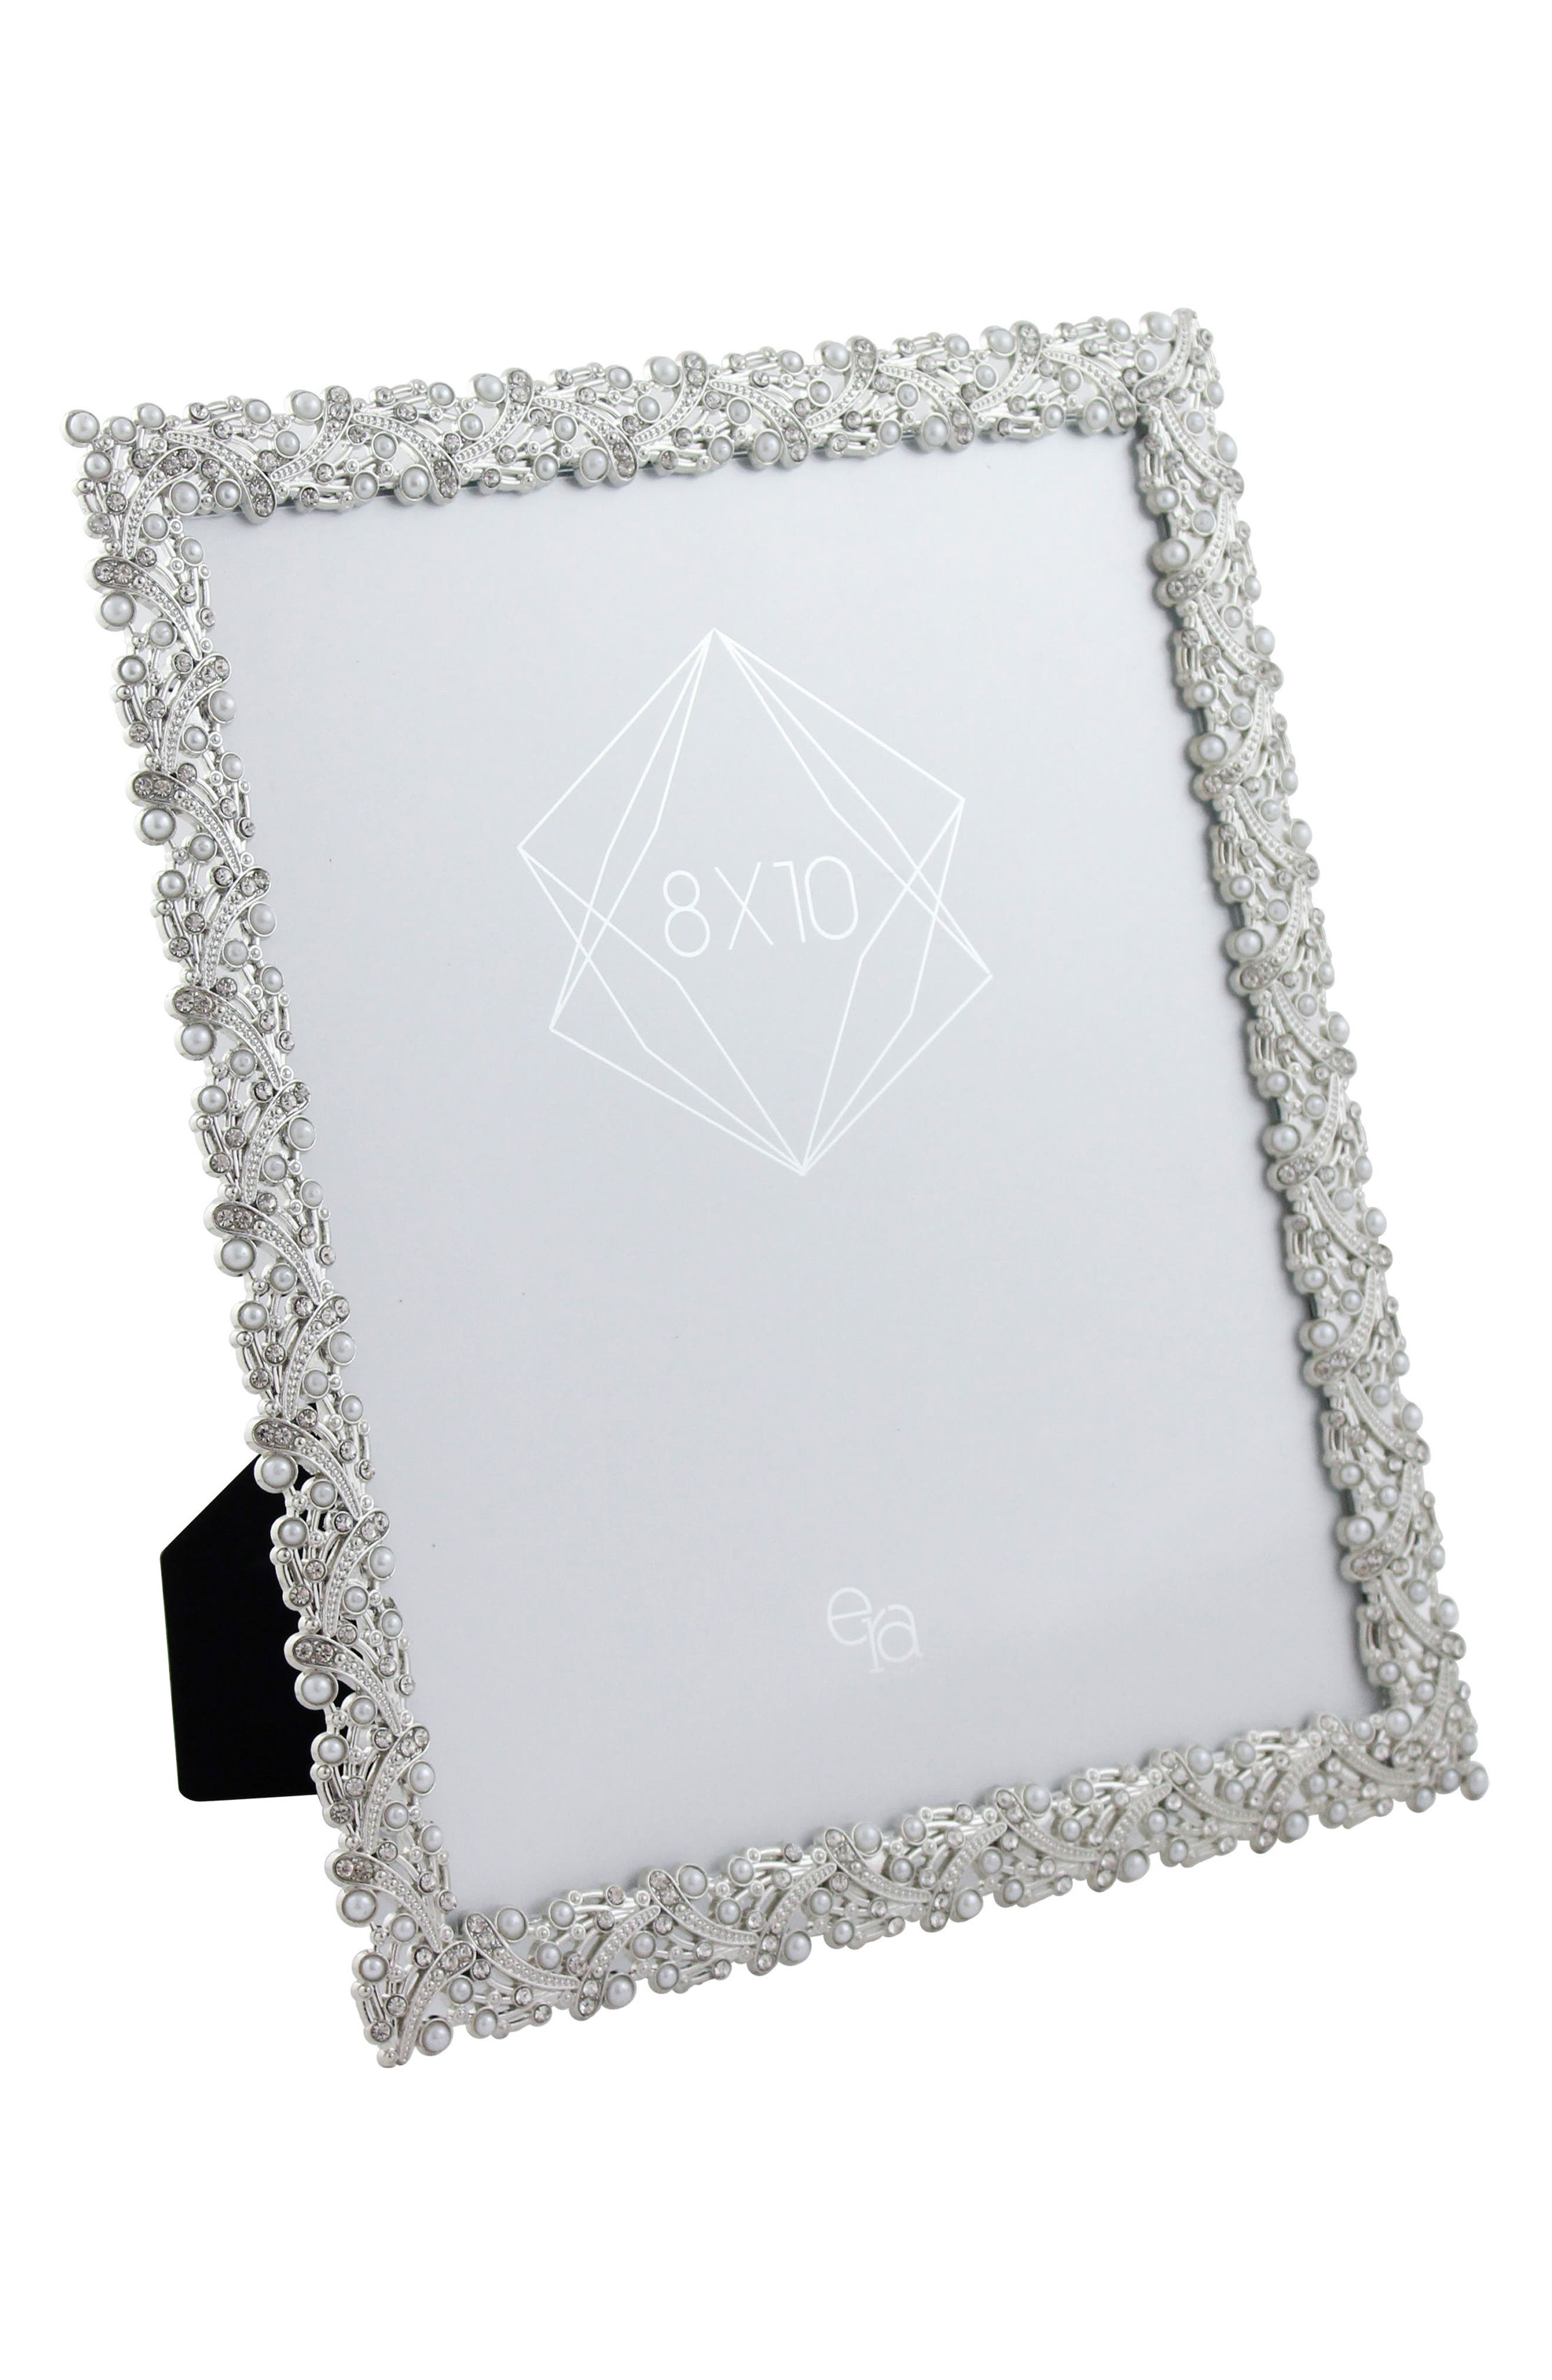 Crystal & Imitation Pearl Picture Frame,                             Alternate thumbnail 2, color,                             040